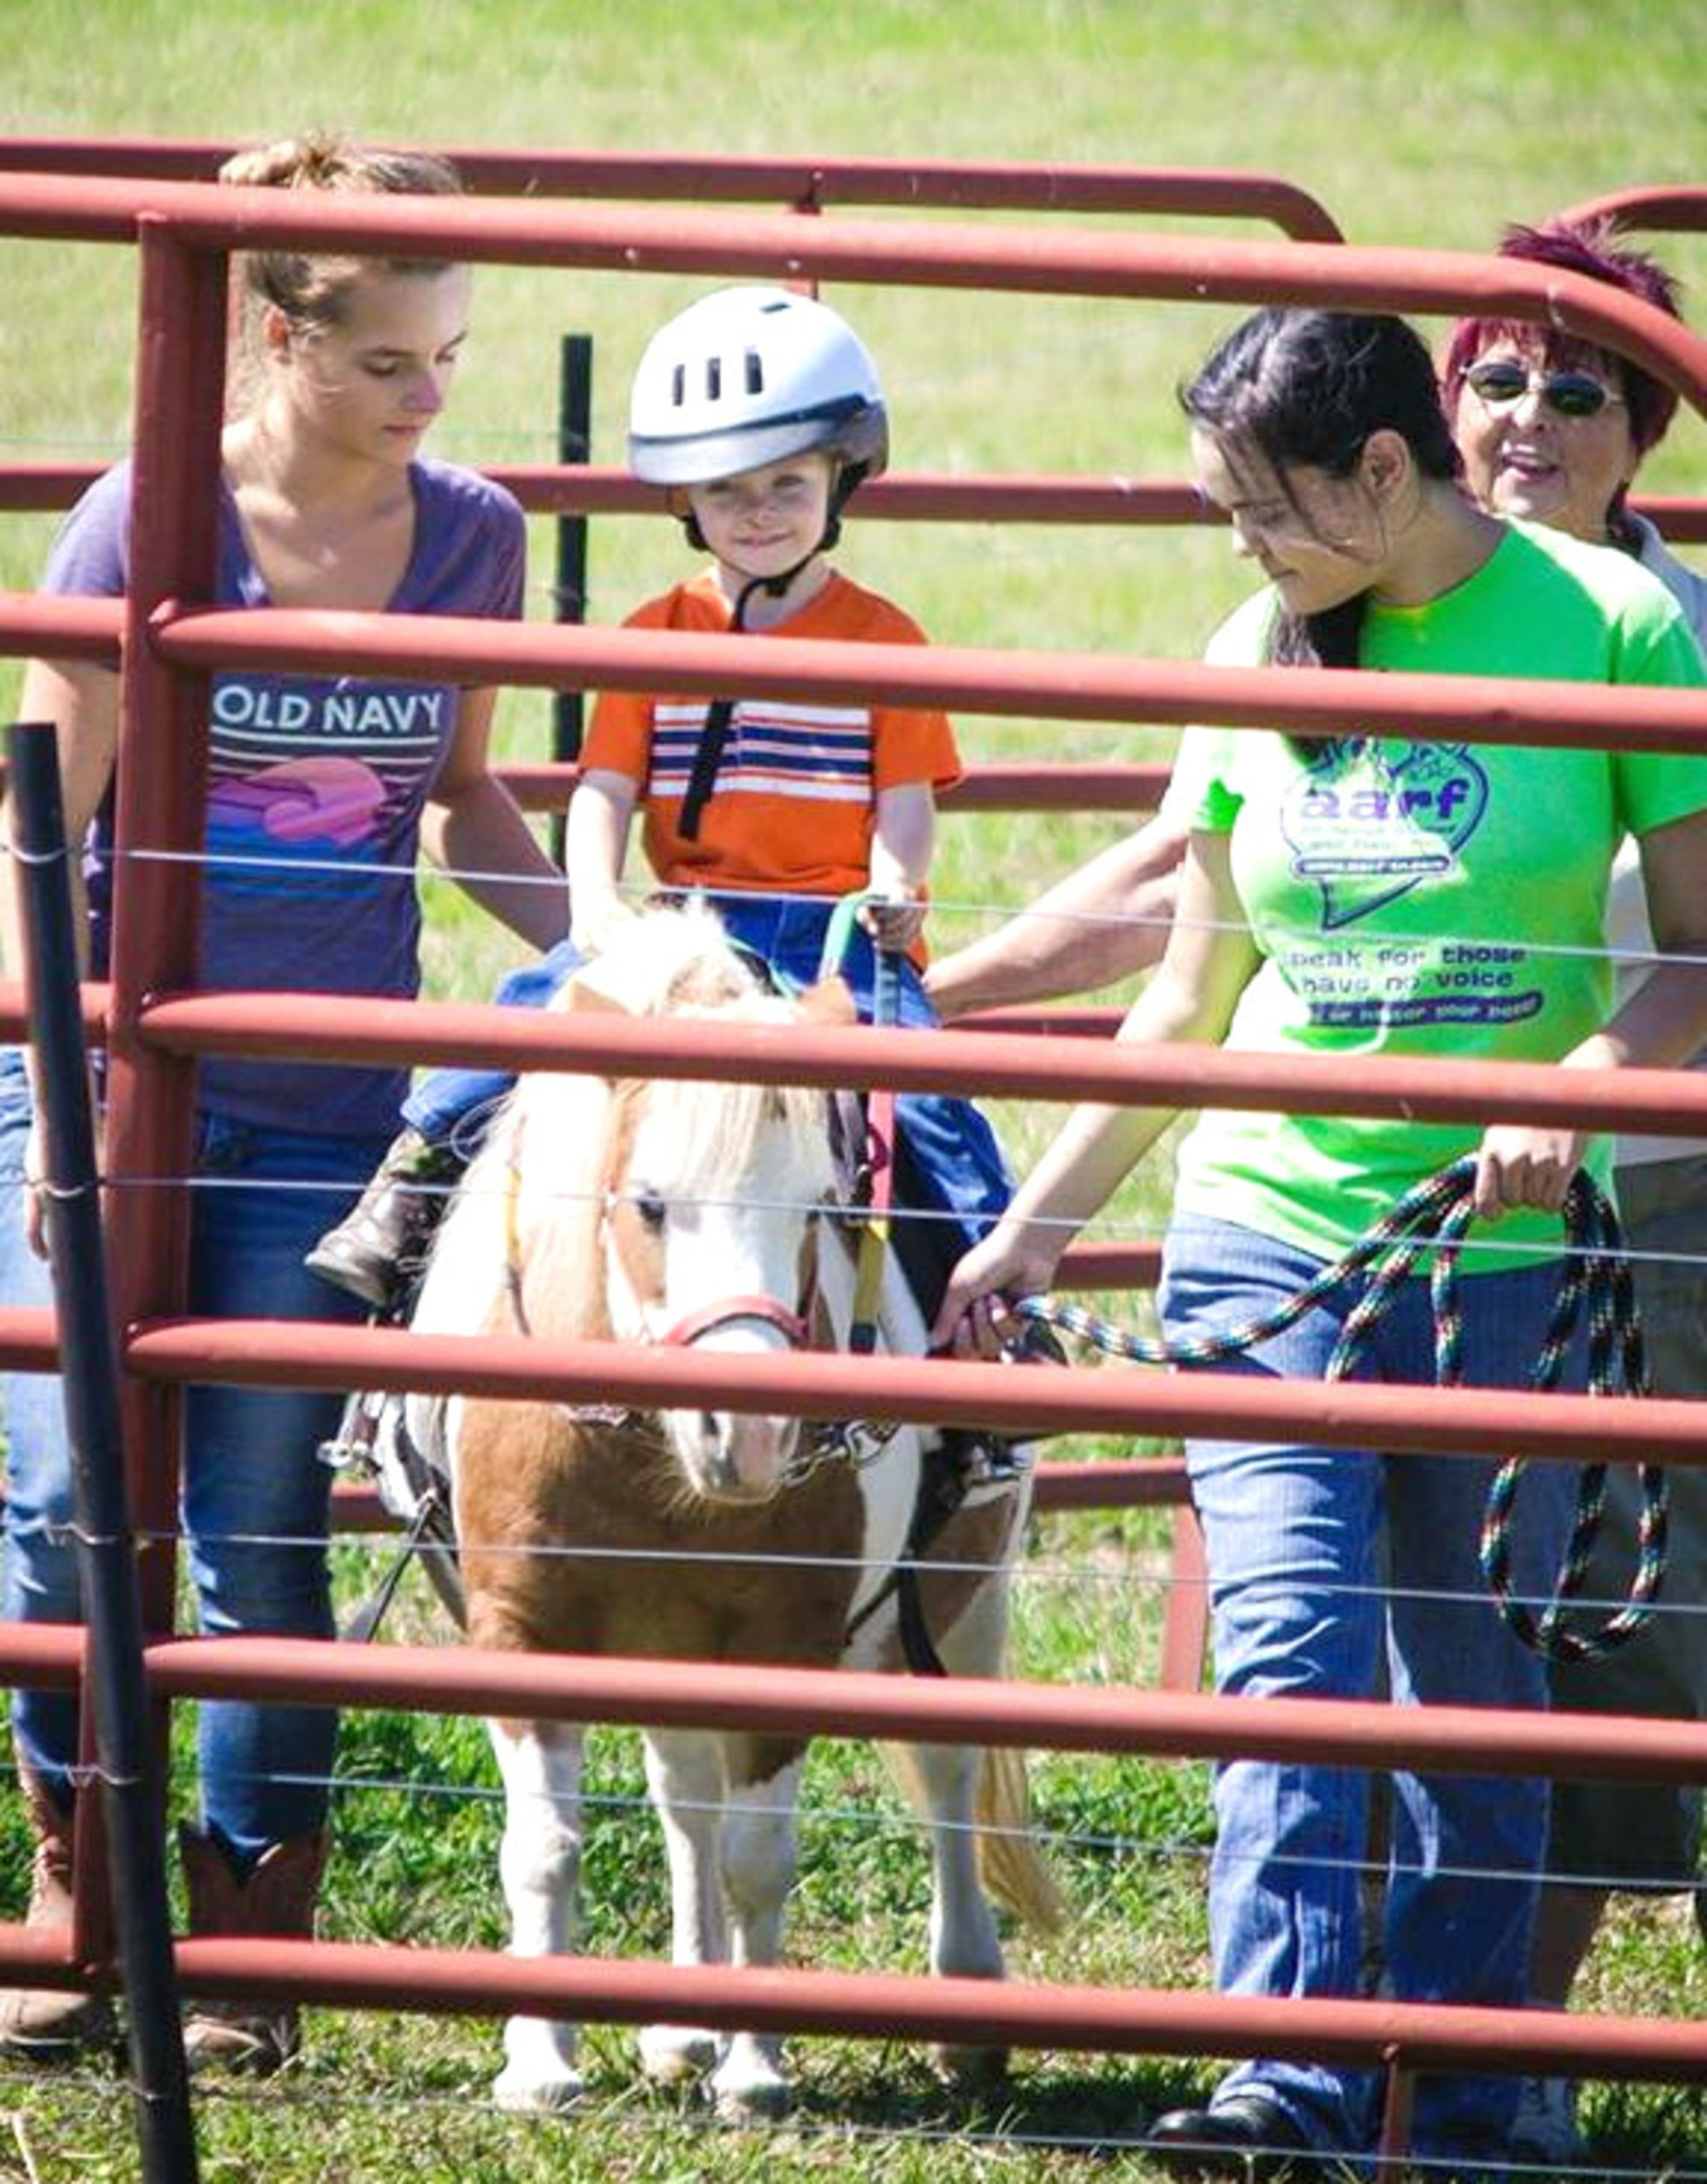 Isaac Snell takes his first ride on Buttercup the pony in the round pen assisted by, from left, Macy Coomer, side-walker; Rachel McCormick, leader; and Bobbie Abell, side-walker.